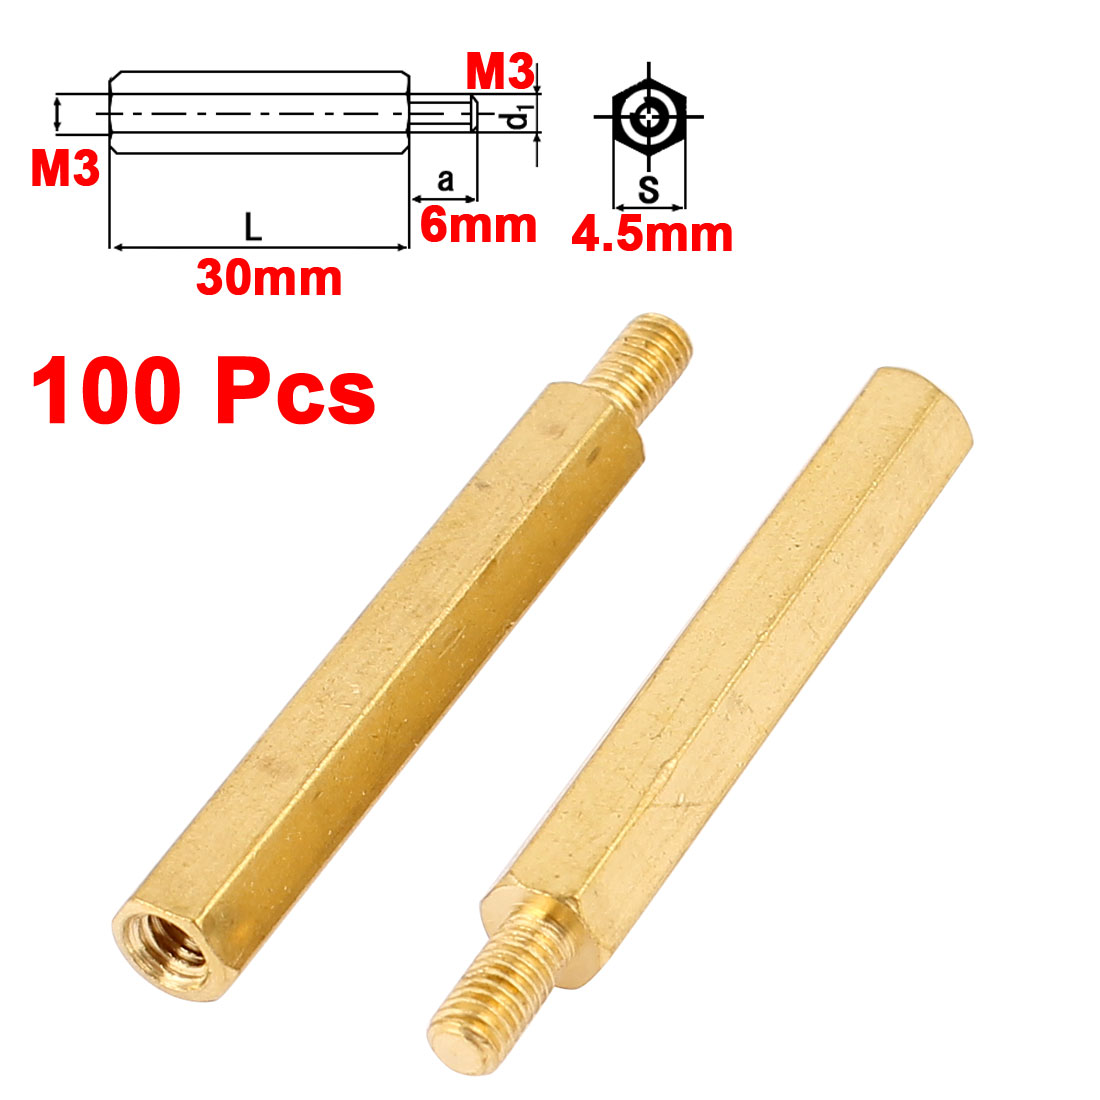 100pcs M3 Male to Female 30mm+6mm Hex Brass Screw Standoff Spacer Pillar for PCB Motherboard